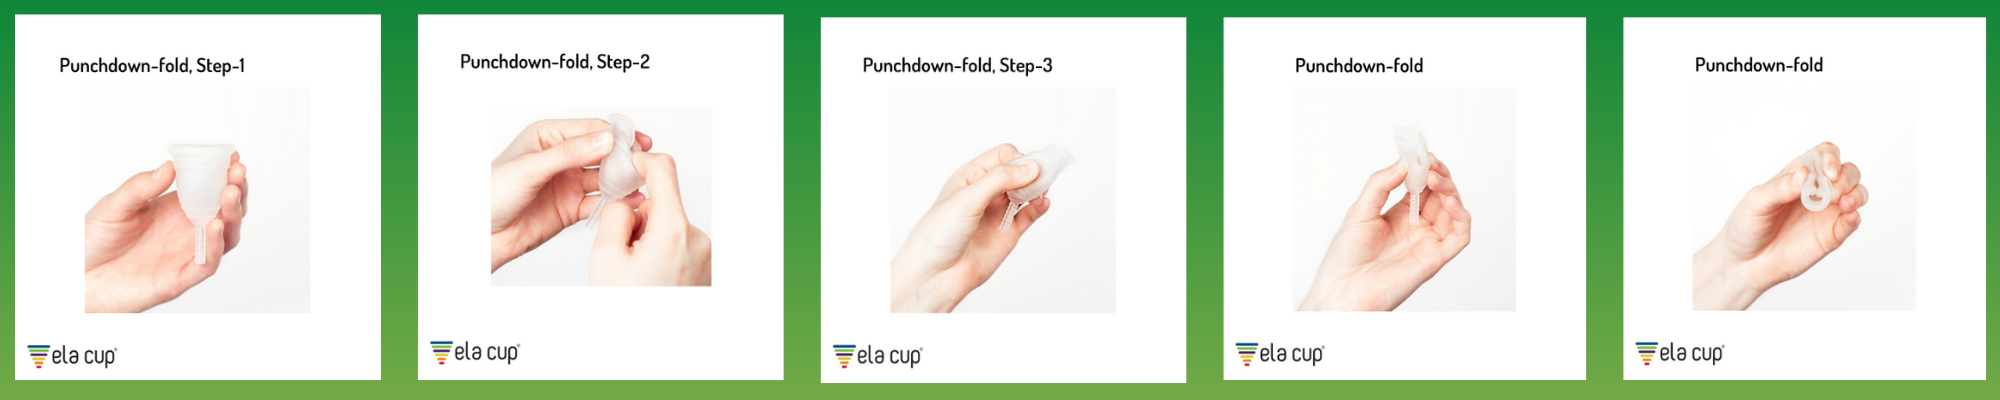 menstrual cup punchdown fold steps sustainable period happy period green menstruation menstrualmatters period care box subscription box